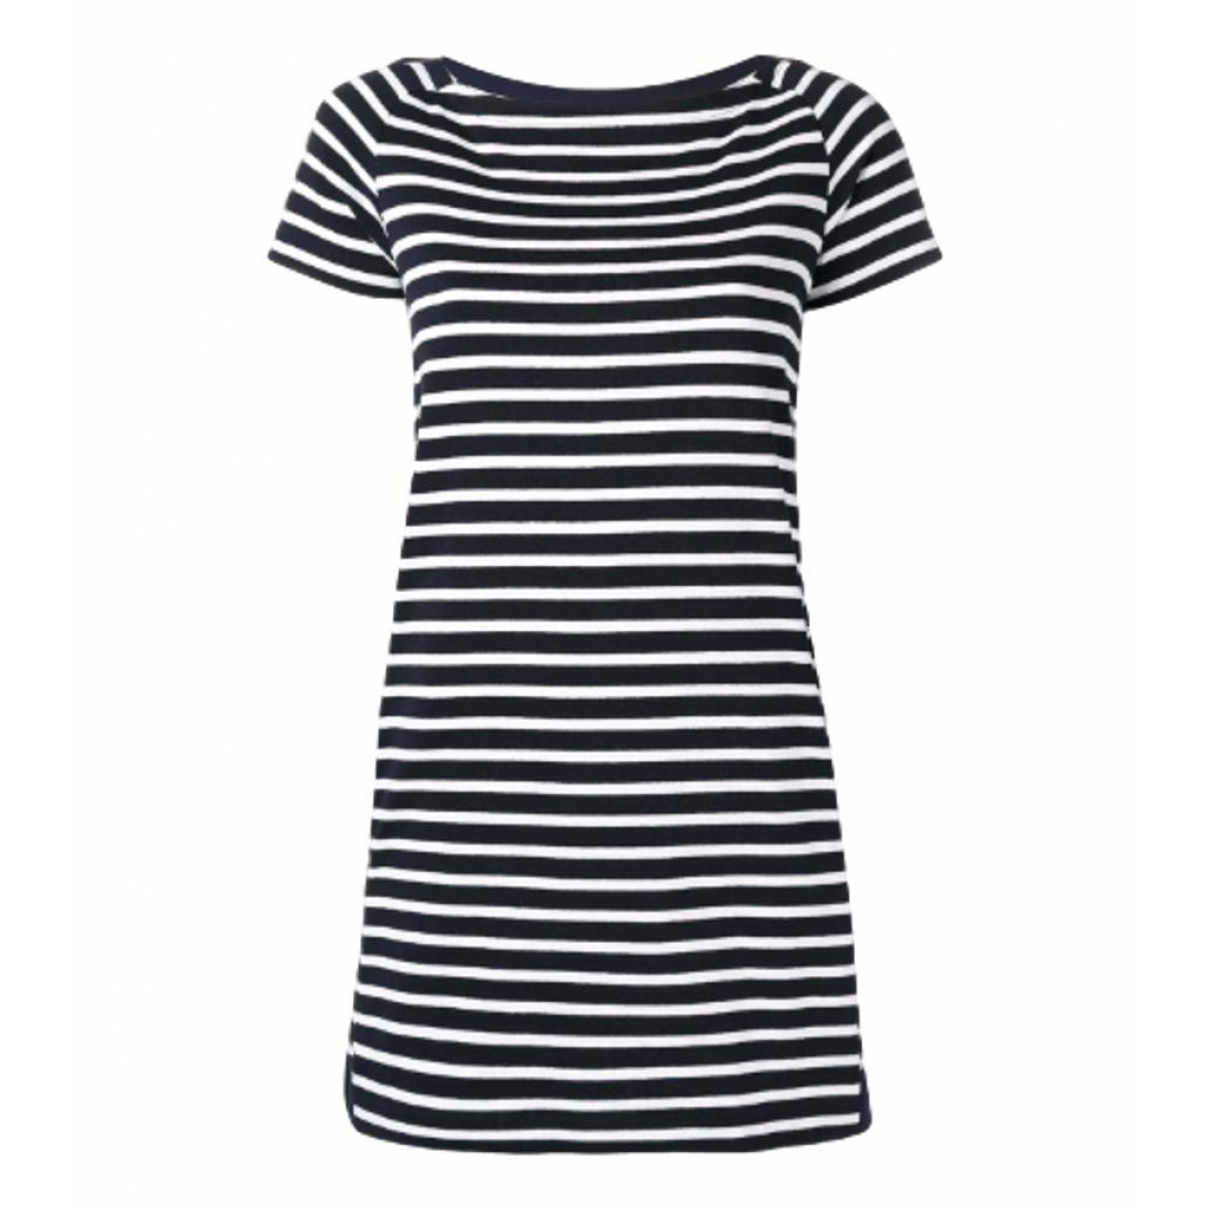 Sacai \N Navy Cotton dress for Women 4 0-5